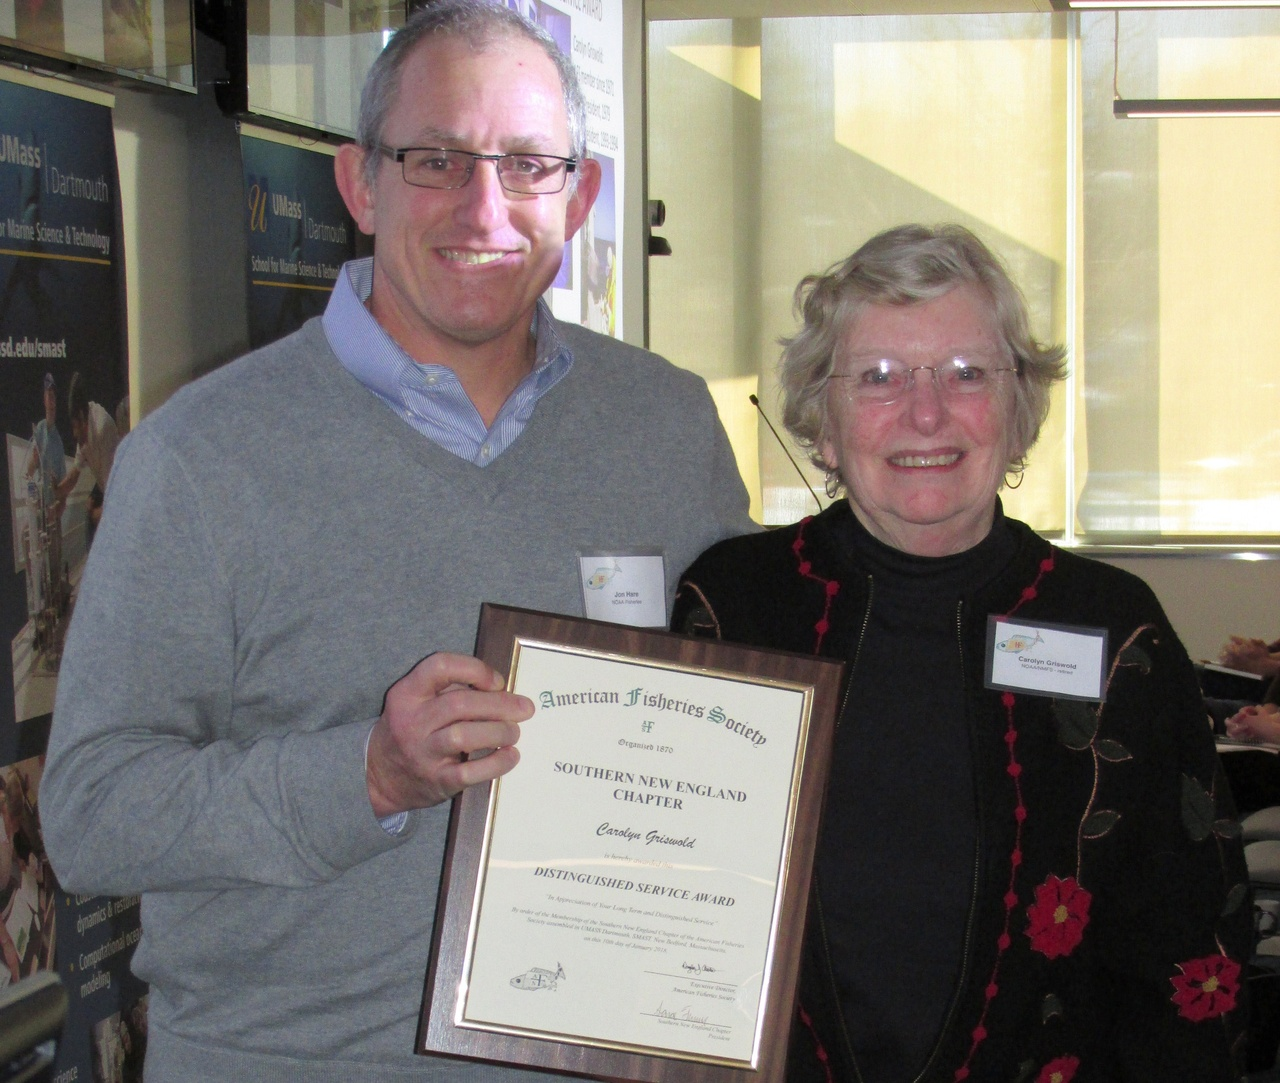 Jon Hare presents AFS award to Carolyn Griswold